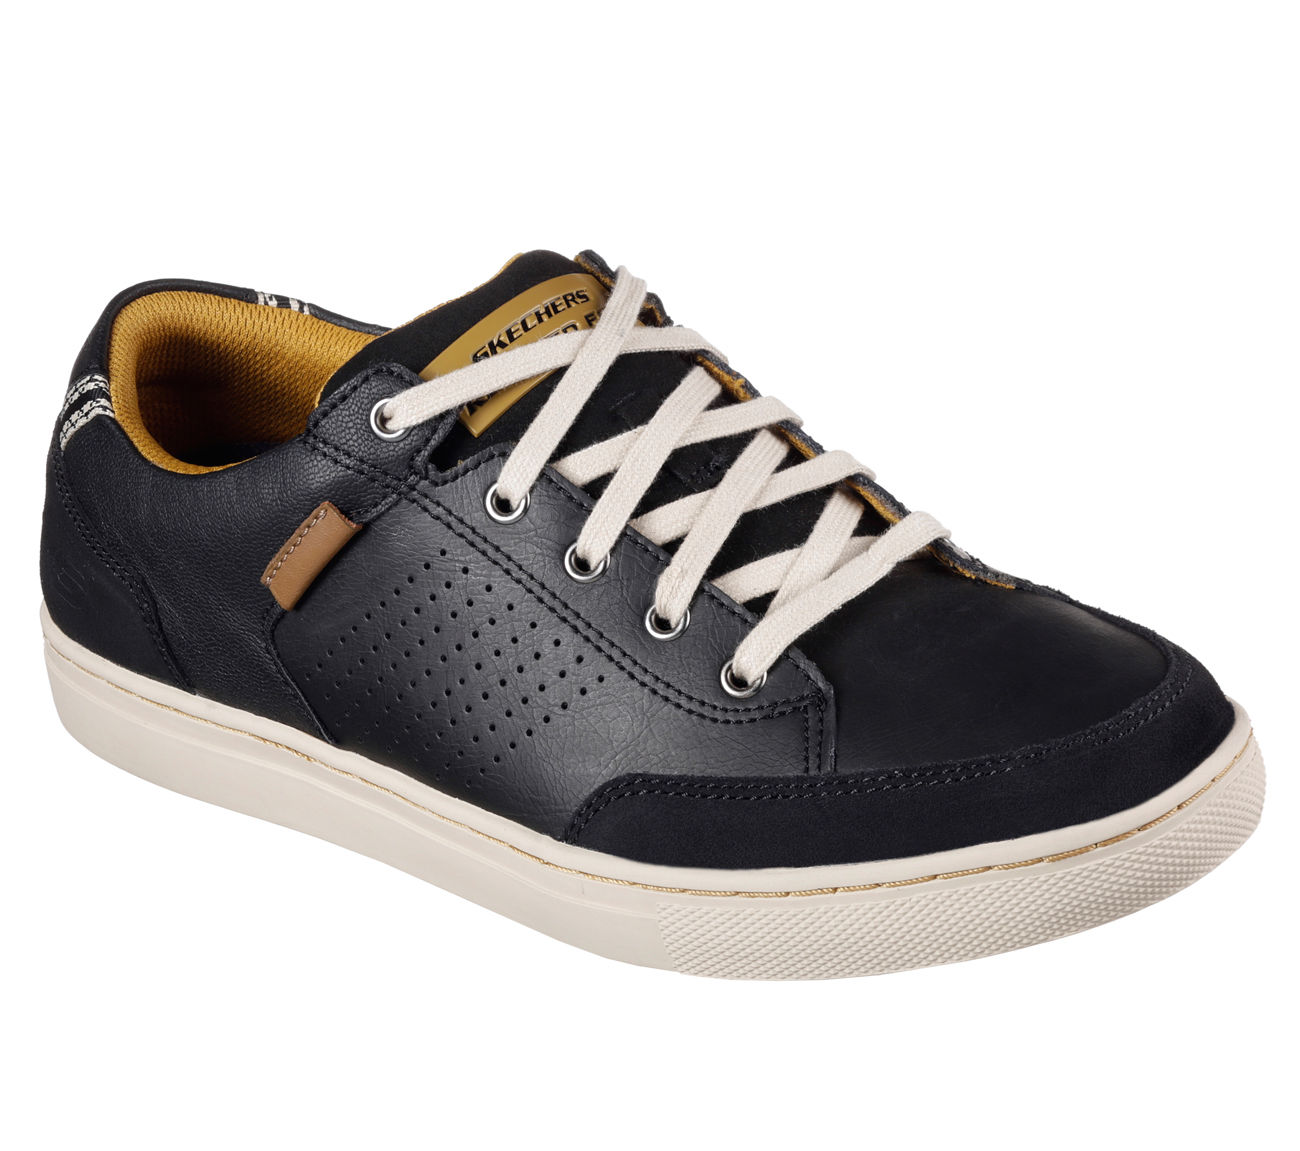 Skechers Men S Relaxed Fit Expected Devention Shoes